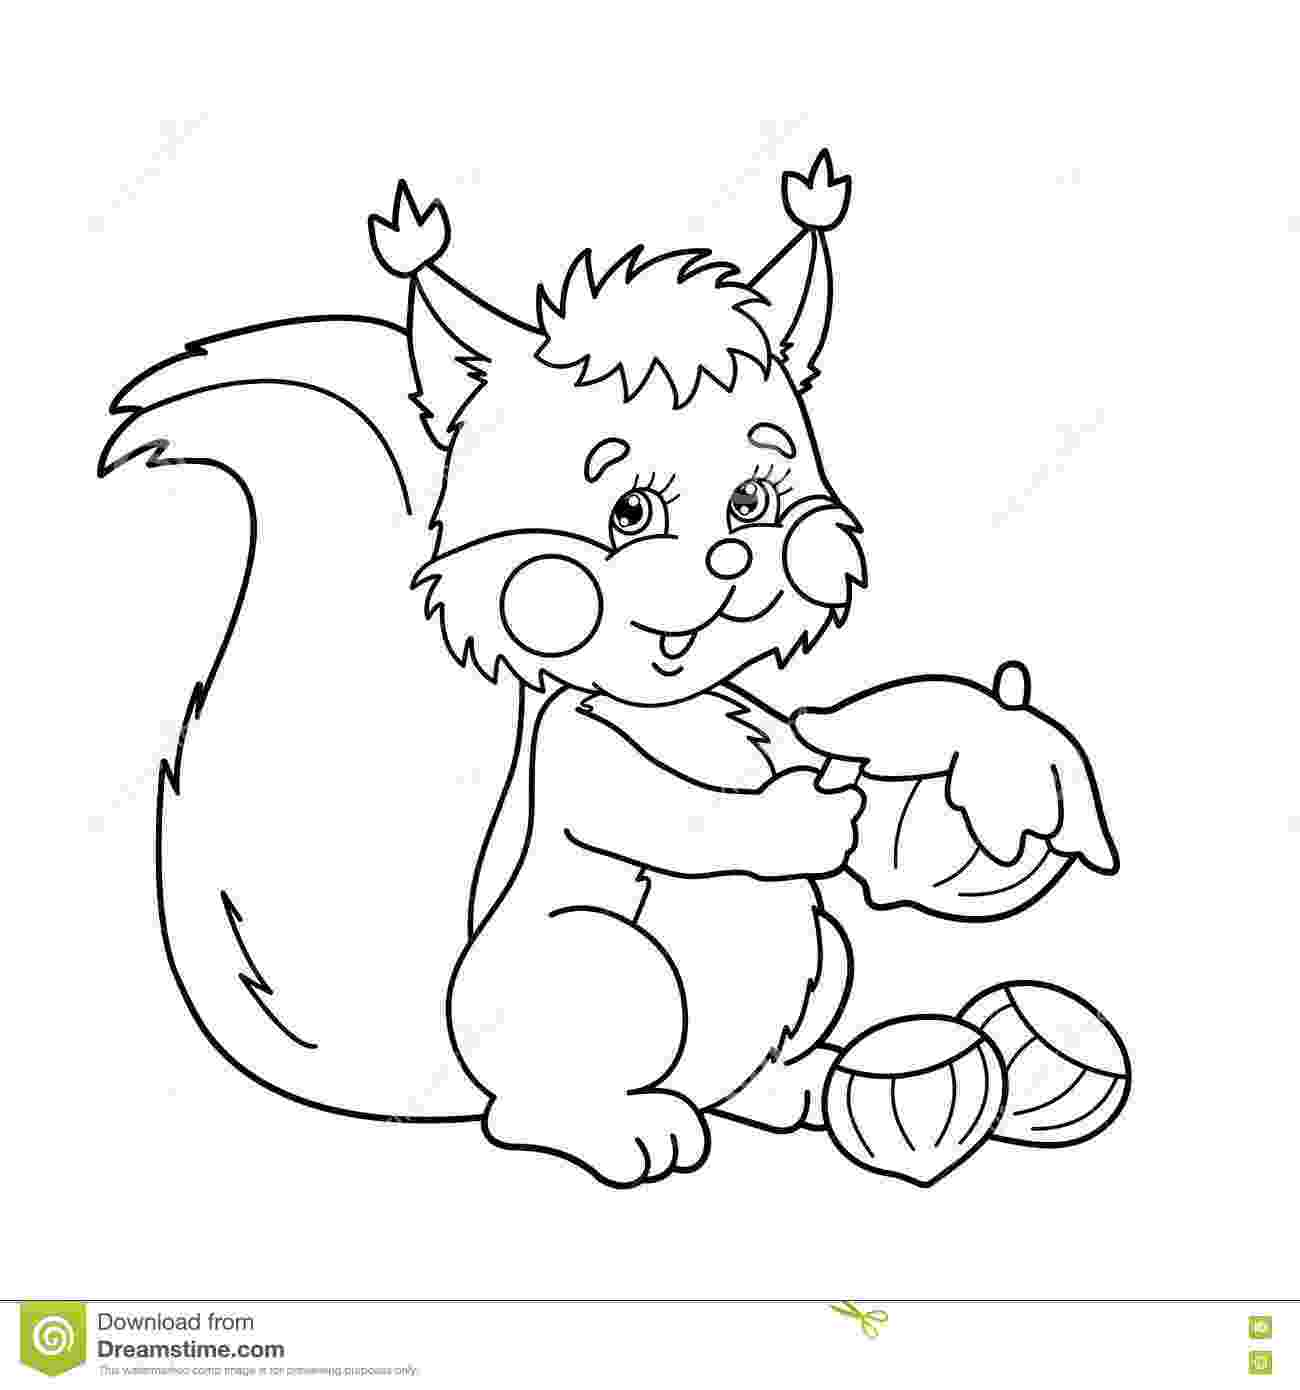 nuts coloring pages screw drawing at getdrawingscom free for personal use nuts pages coloring